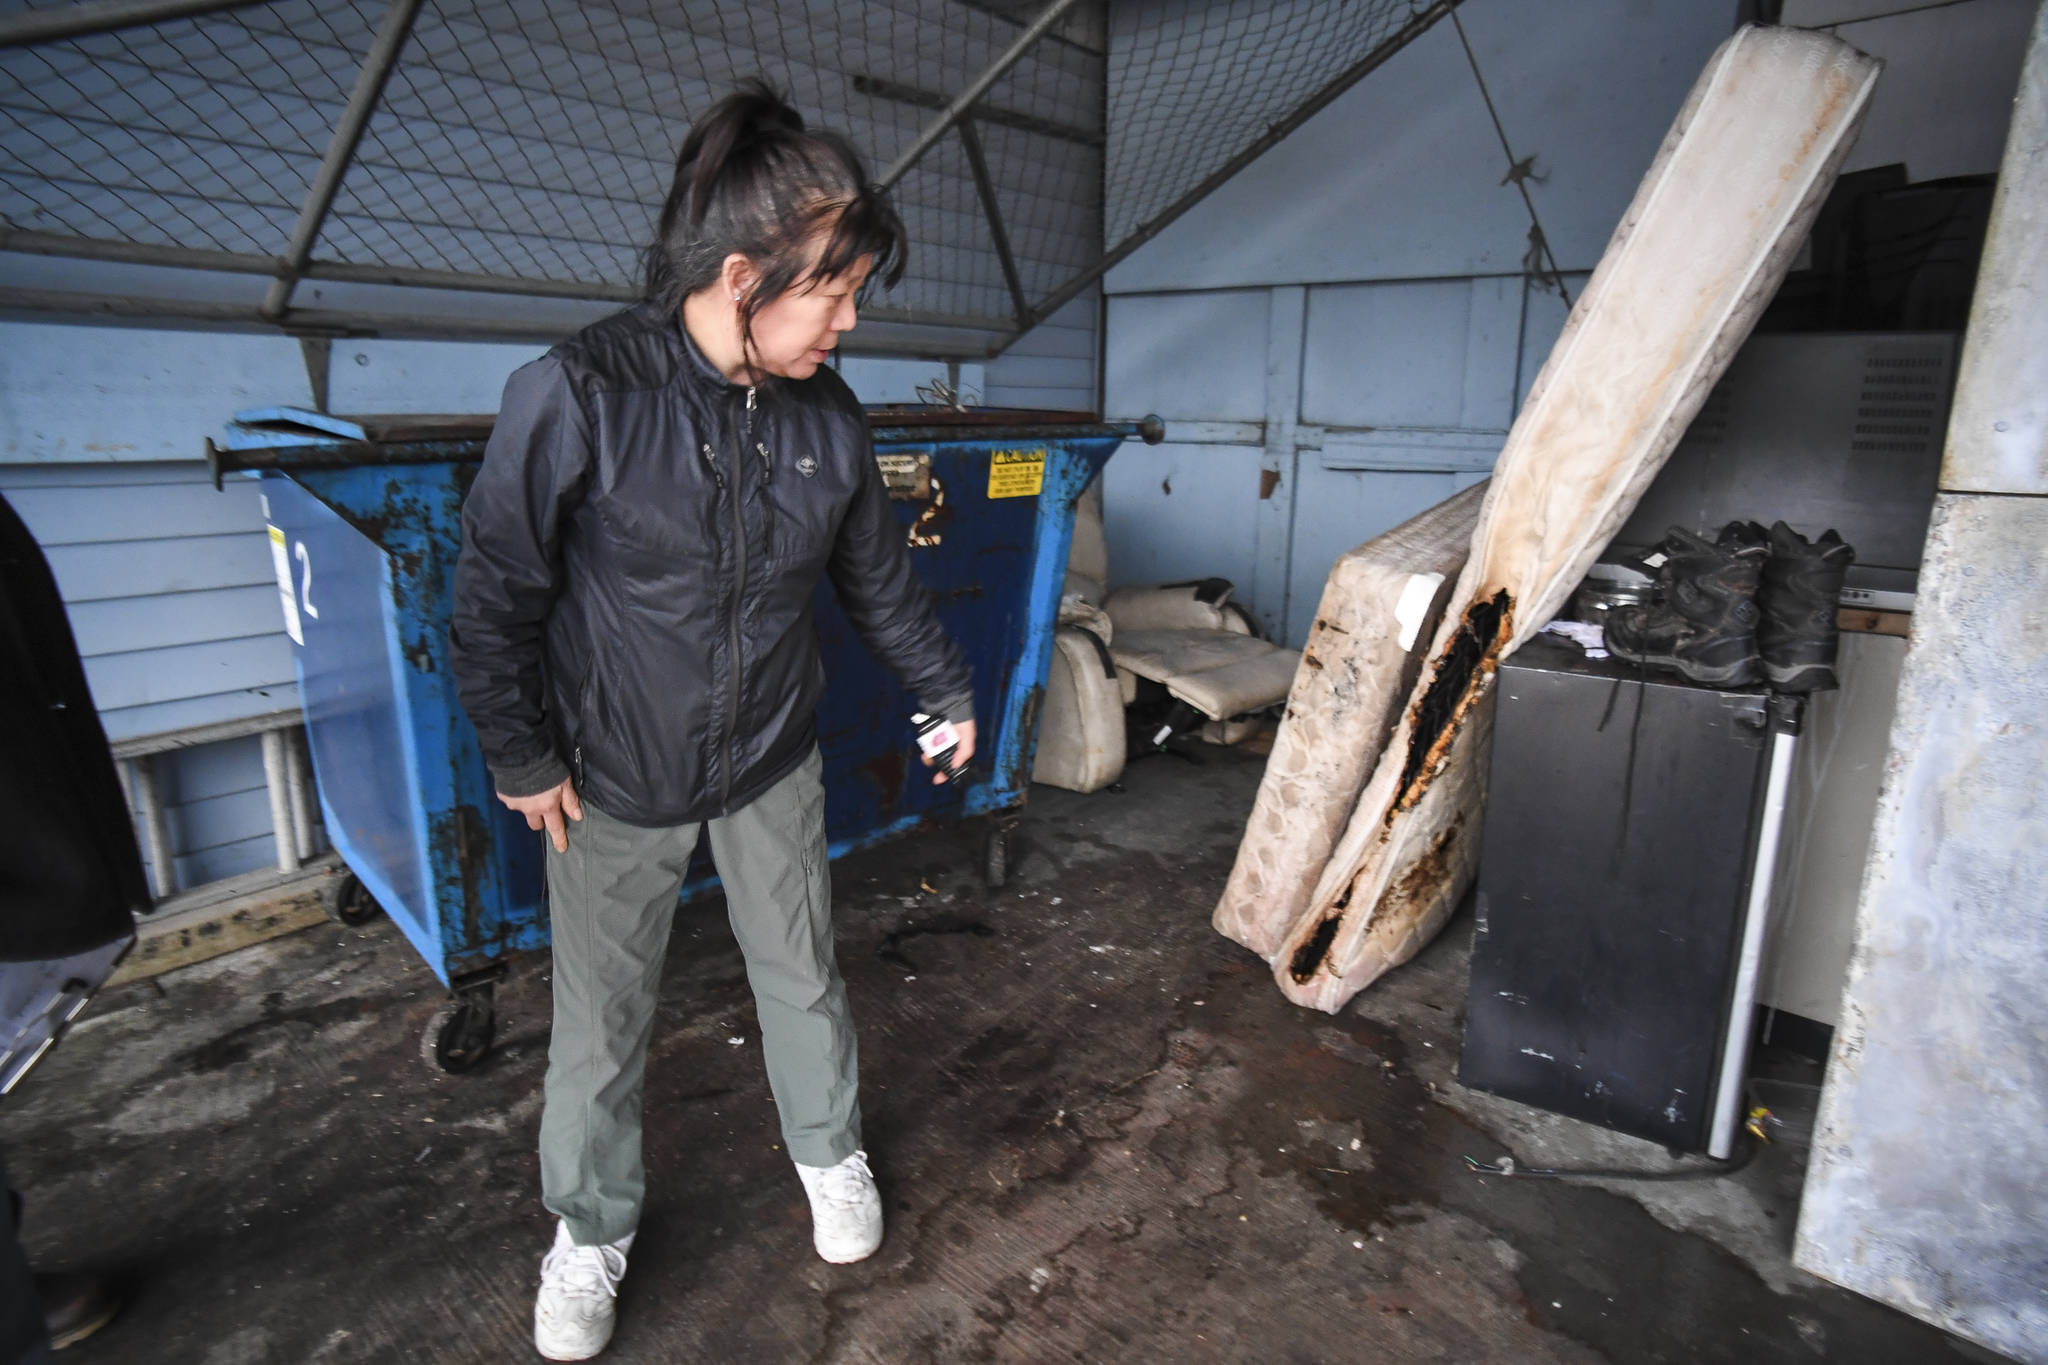 Gina Chi-Mott, general manager of the Breakwater Inn, shows a burned mattress on Monday, Dec. 16, 2019, from a room fire on Sunday. (Michael Penn | Juneau Empire)